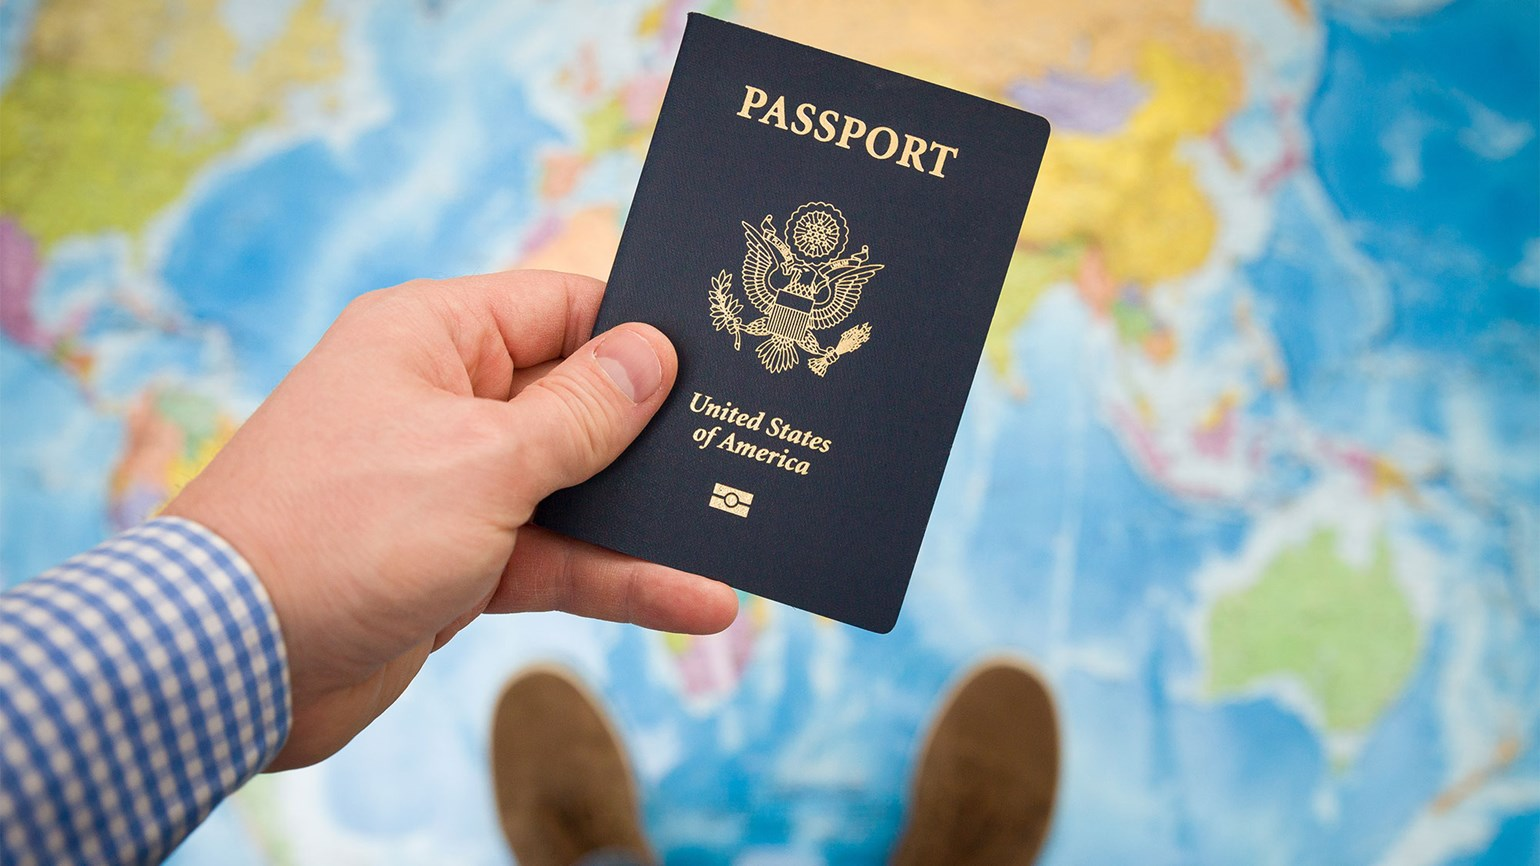 State Department revises passport operations